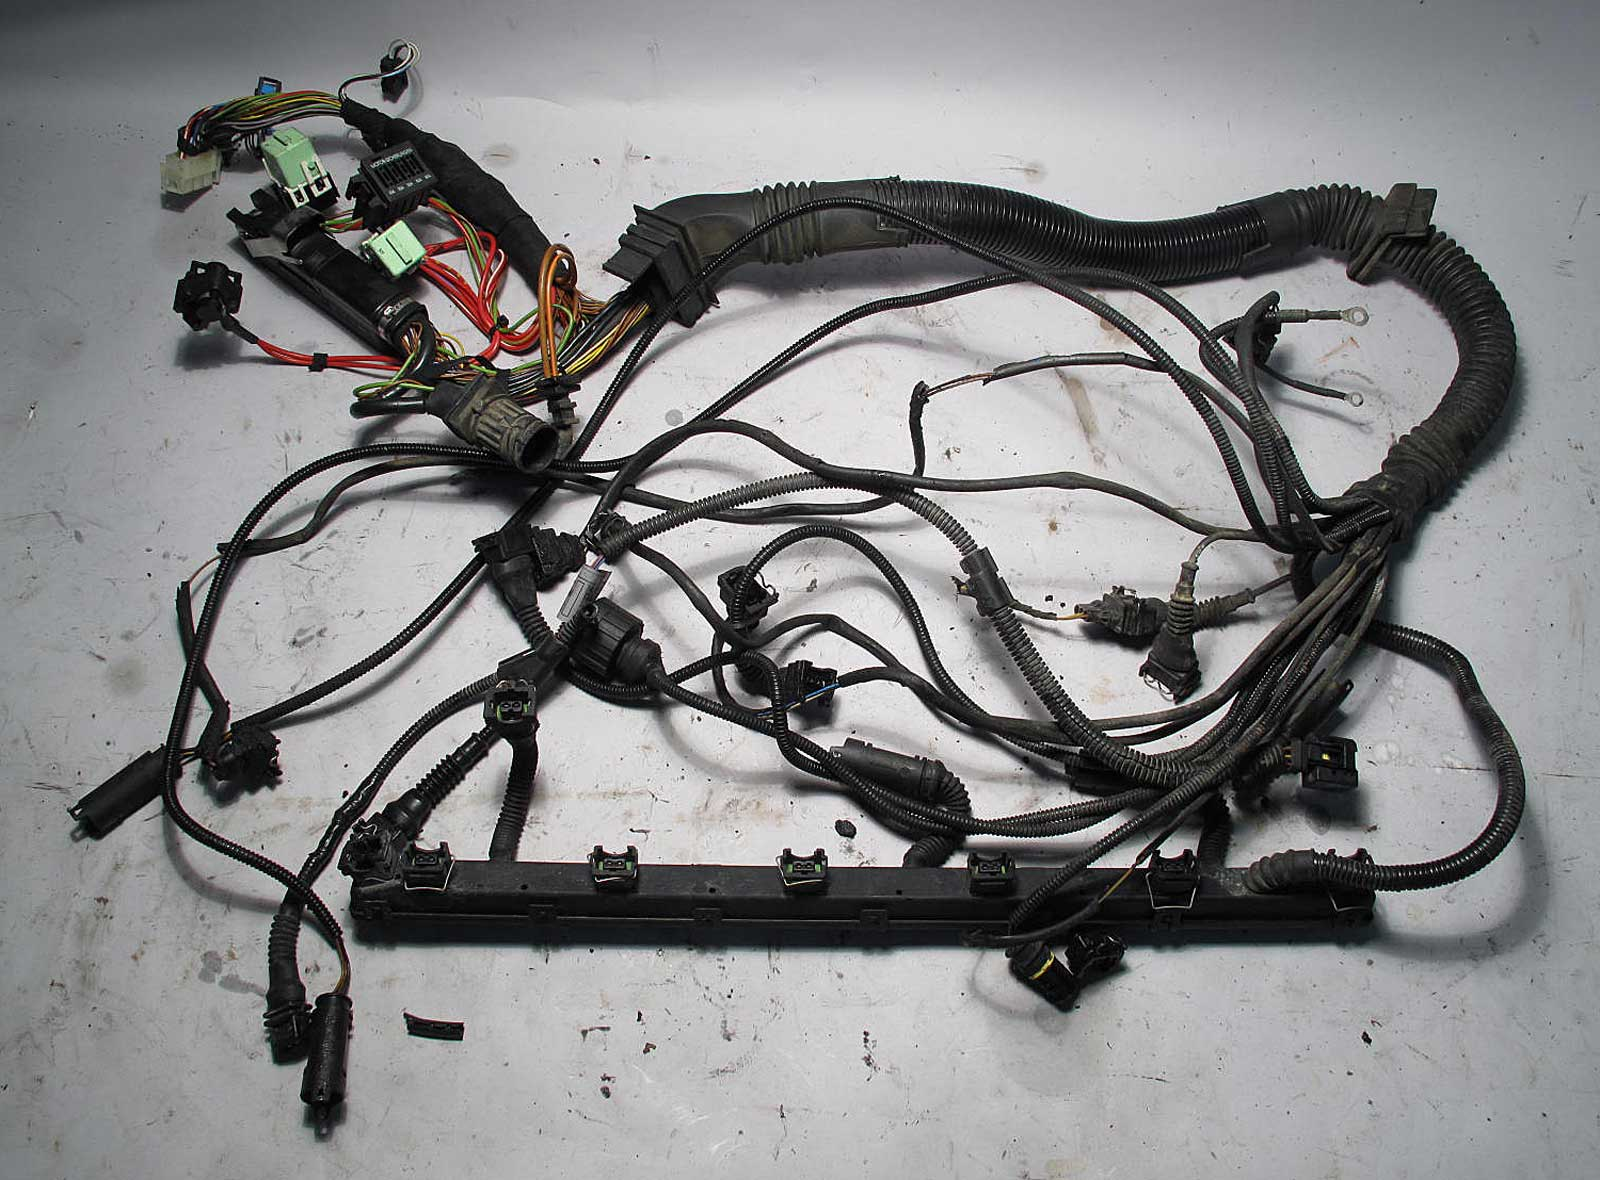 inv_004585 bmw e39 1998 528i 5 spd manual engine wiring harness complete m52 BMW E36 M3 for Sale at n-0.co